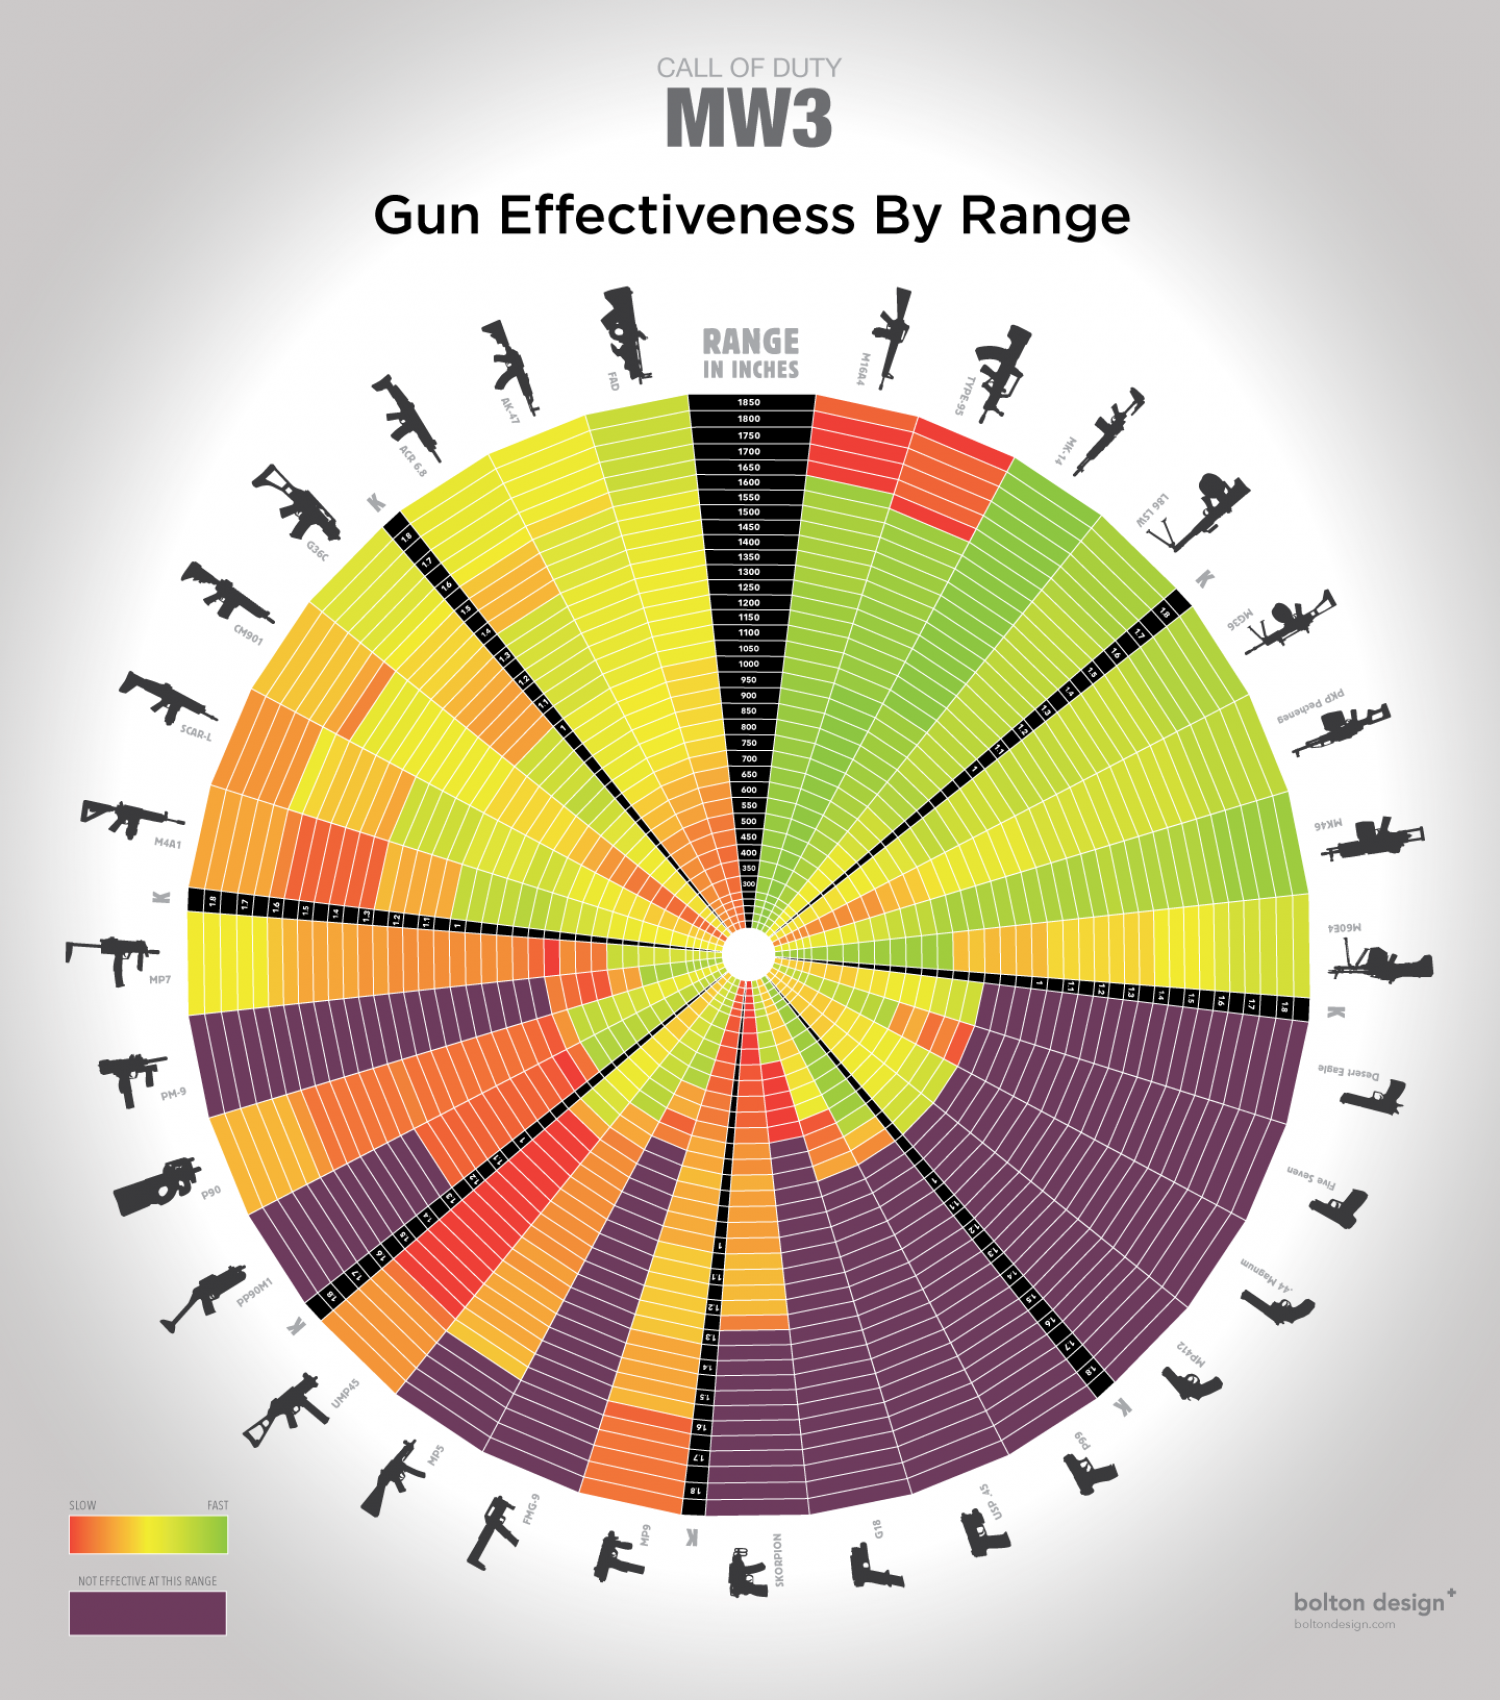 Call of Duty MW3 Gun Effectiveness by Range Infographic